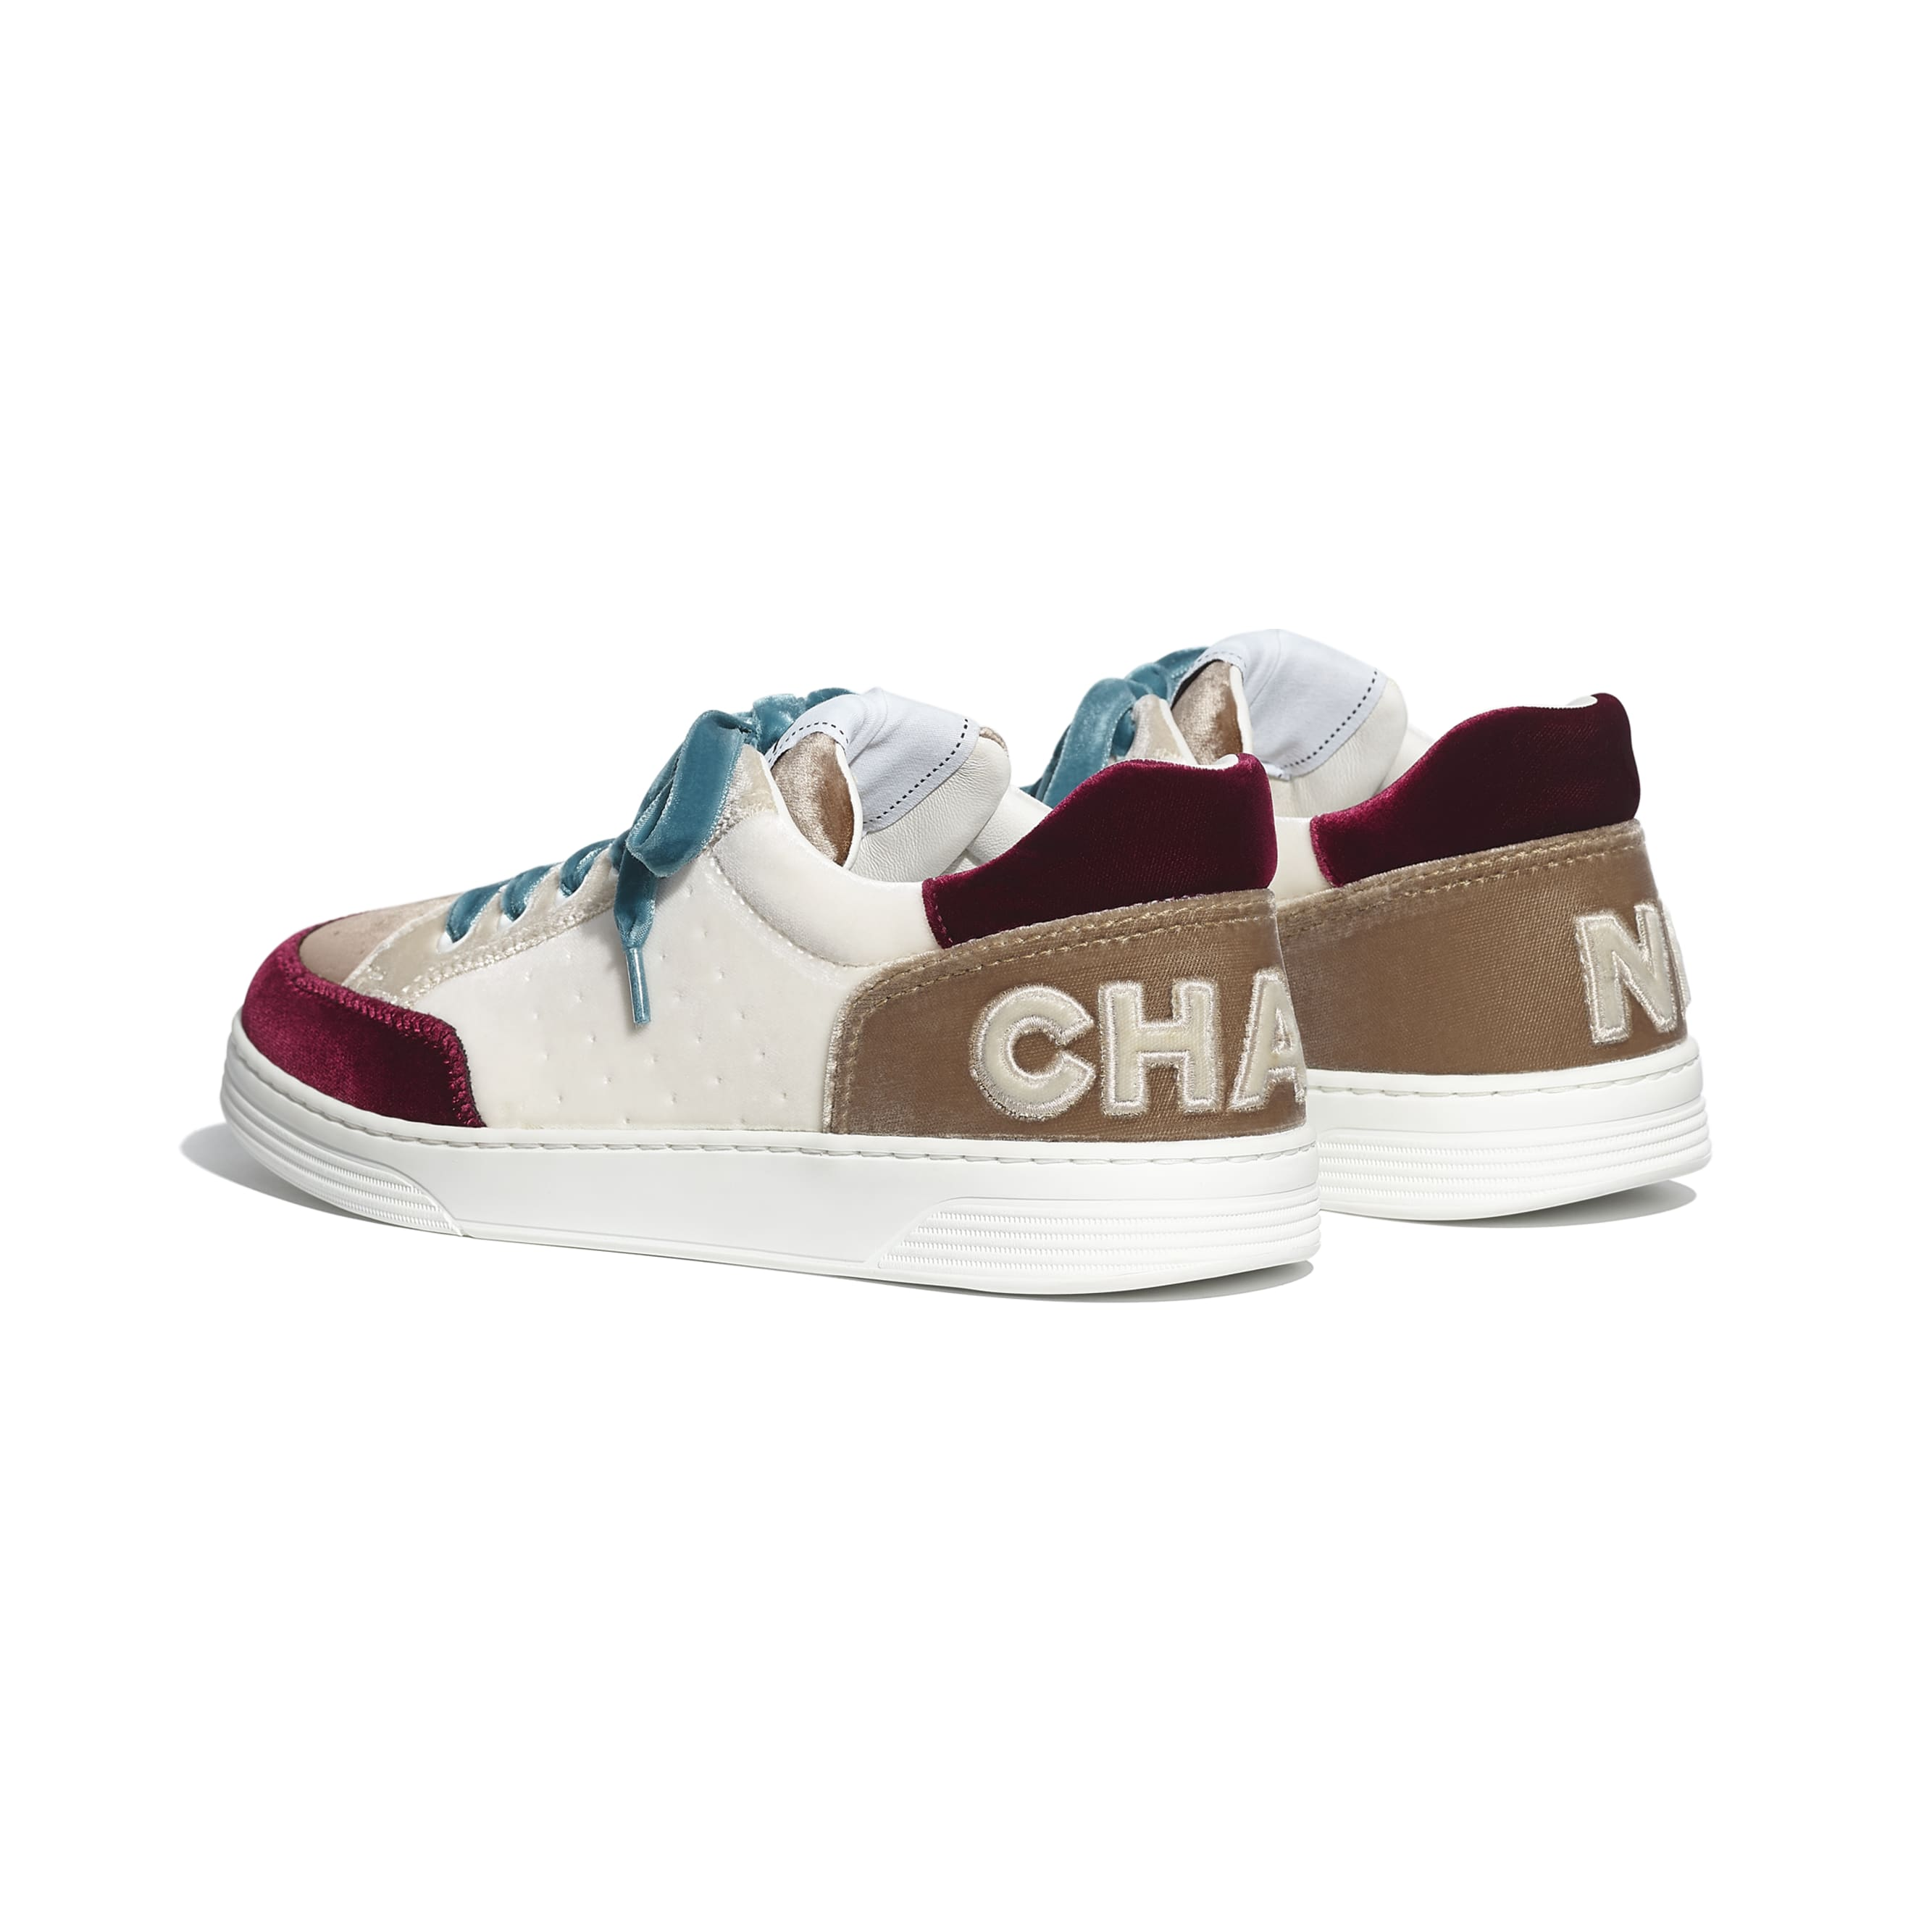 Trainers - White, Beige & Burgundy - Velvet - CHANEL - Other view - see standard sized version